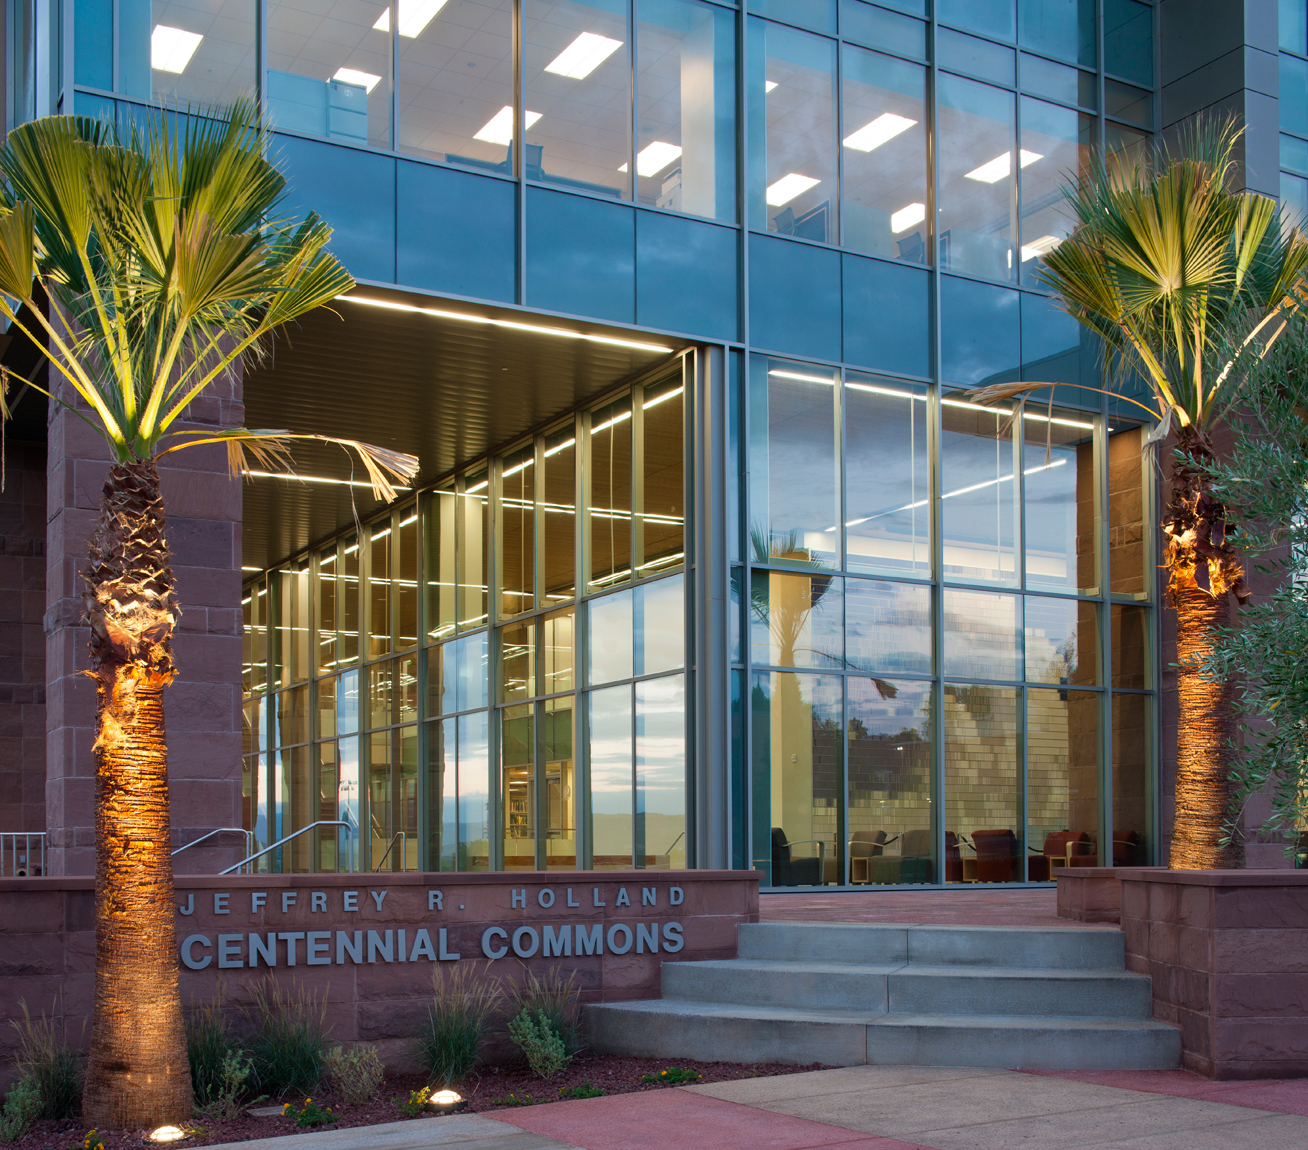 Jeffrey R. Holland Centennial Commons Building at Dixie State College in St. George, UT. for Sasaki & Assoc. and VCBO Architects. Architectural Photography by: Paul Richer / RICHER IMAGES